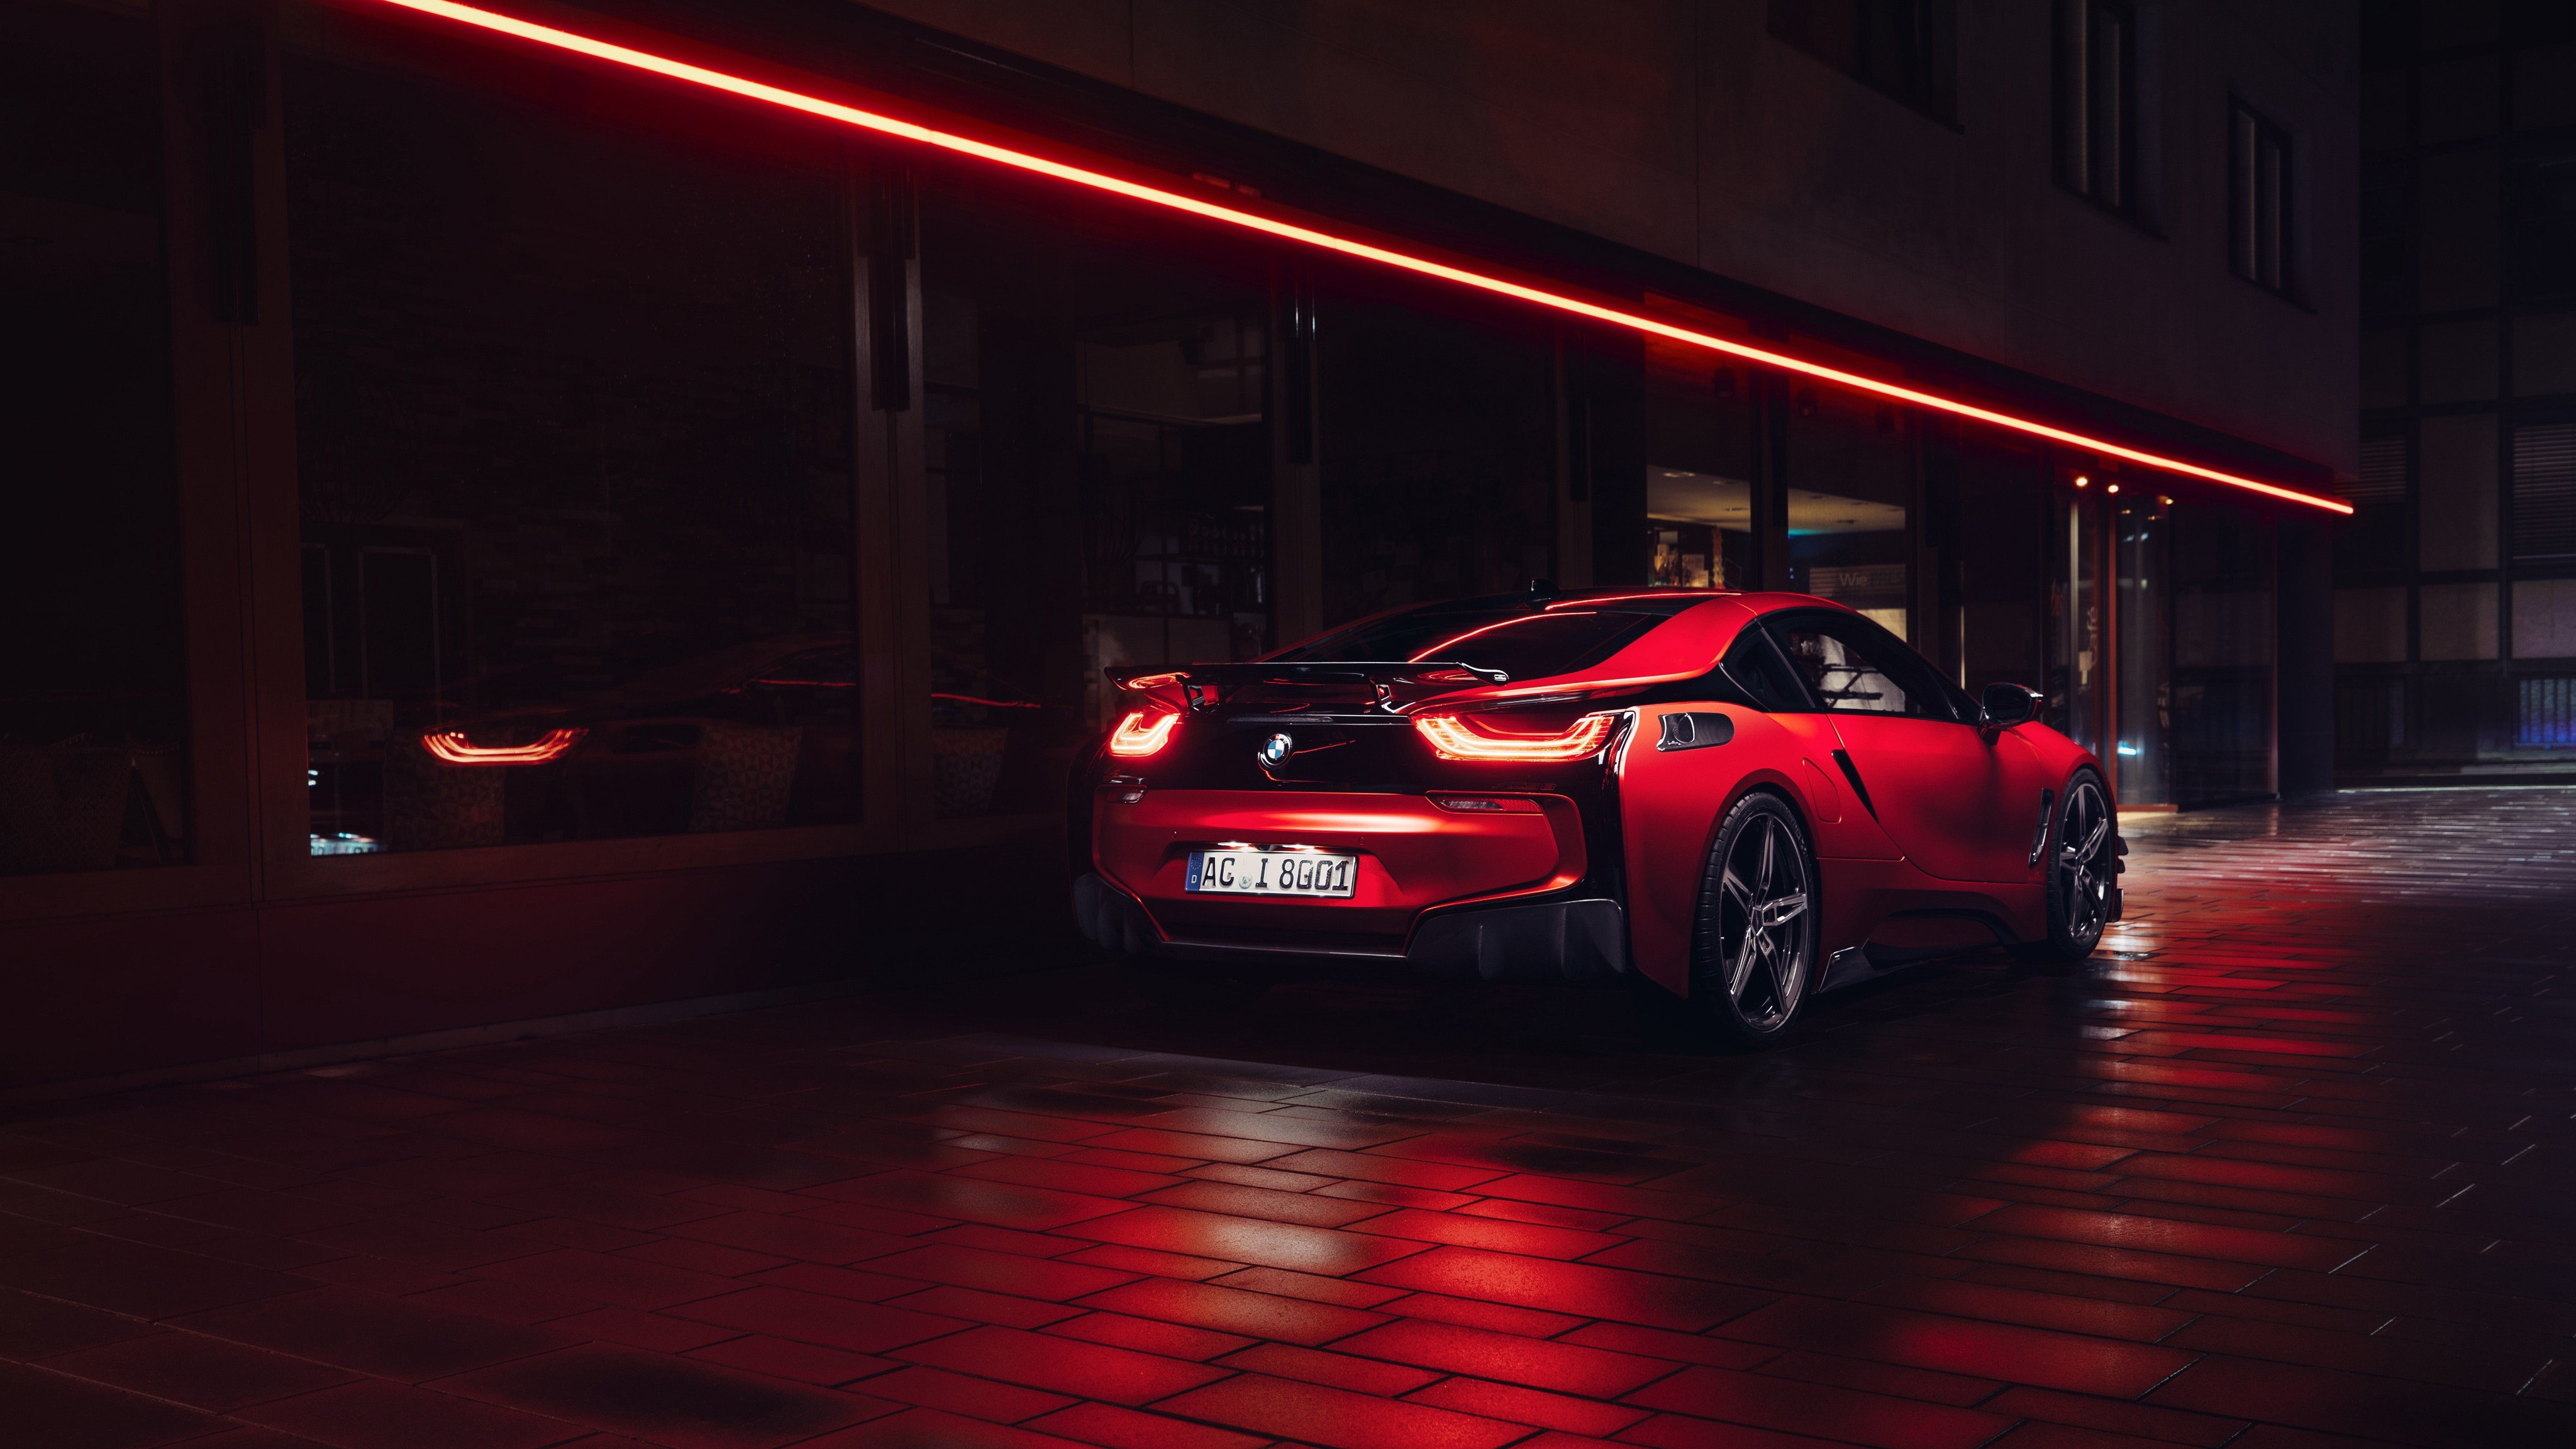 Latest 2017 Ac Schnitzer Acs8 Bmw I8 6 Wallpaper Hd Car Free Download